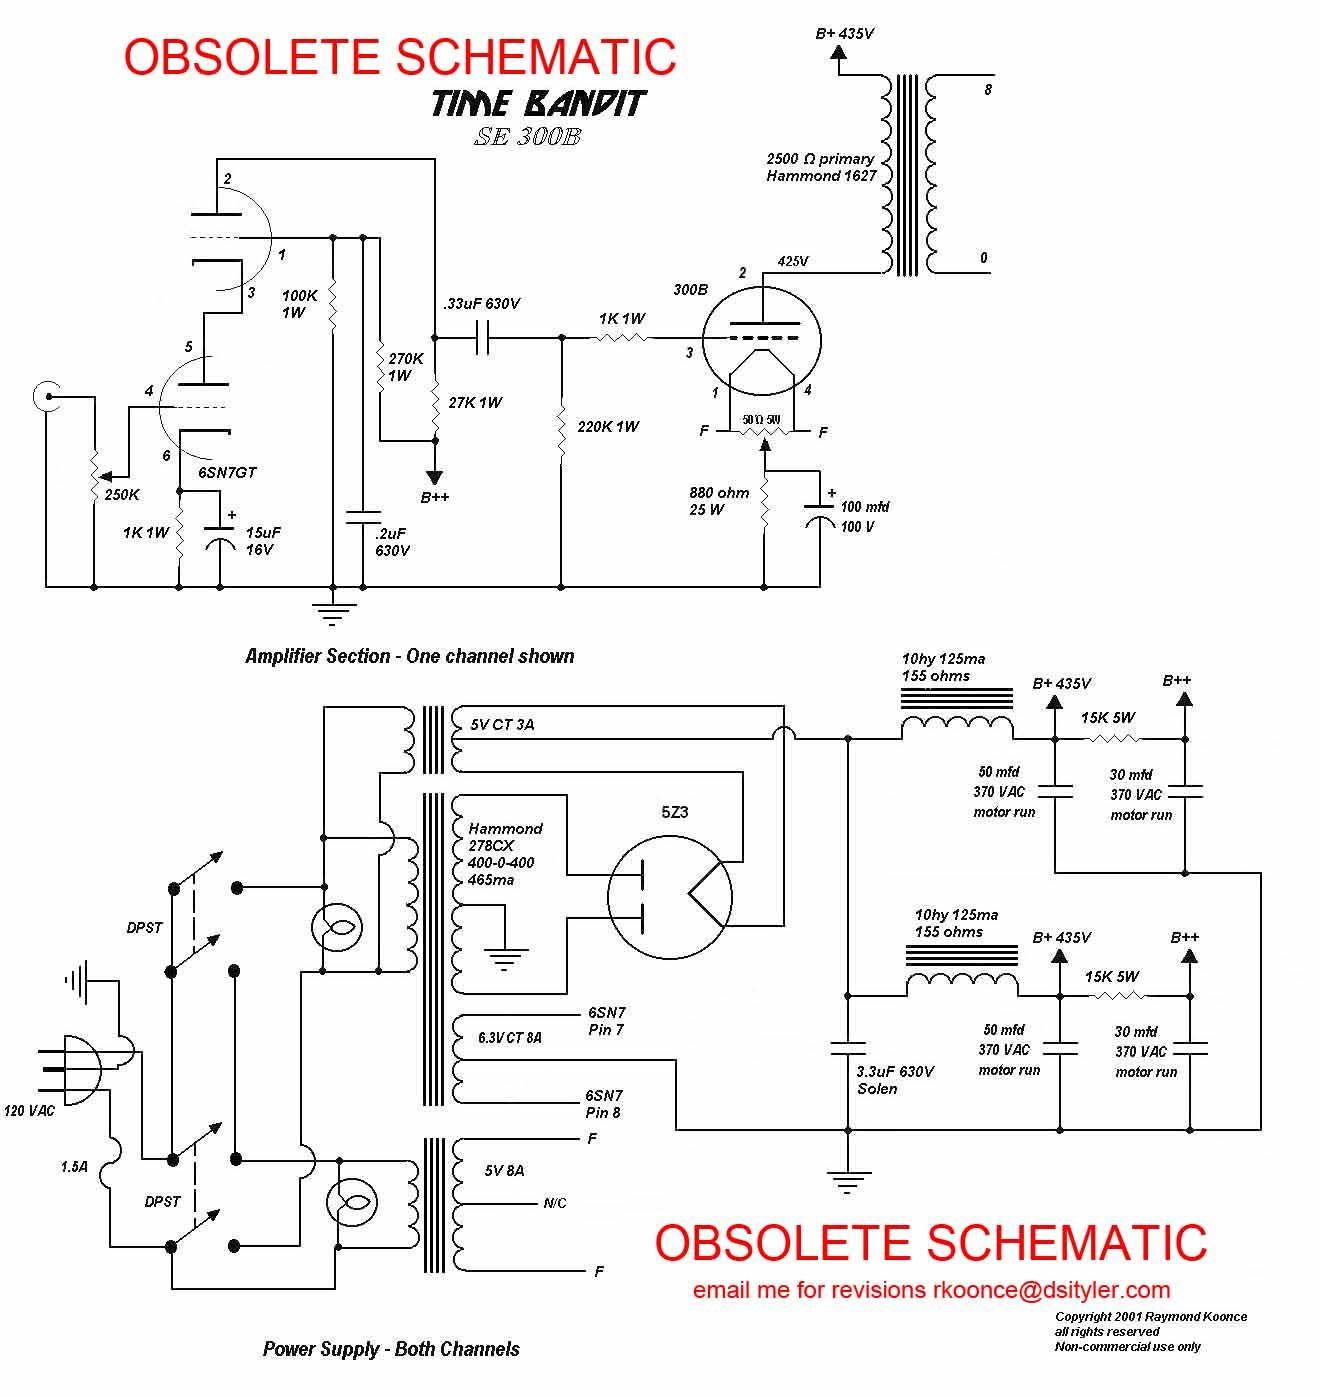 300b power tube amplifier schematics diy enthusiasts wiring diagrams \u2022 diy tube amp attenuator obsolete schematic se 300b diy audio pinterest circuits rh pinterest com tube power amplifier schematics high end tube amplifier schematics